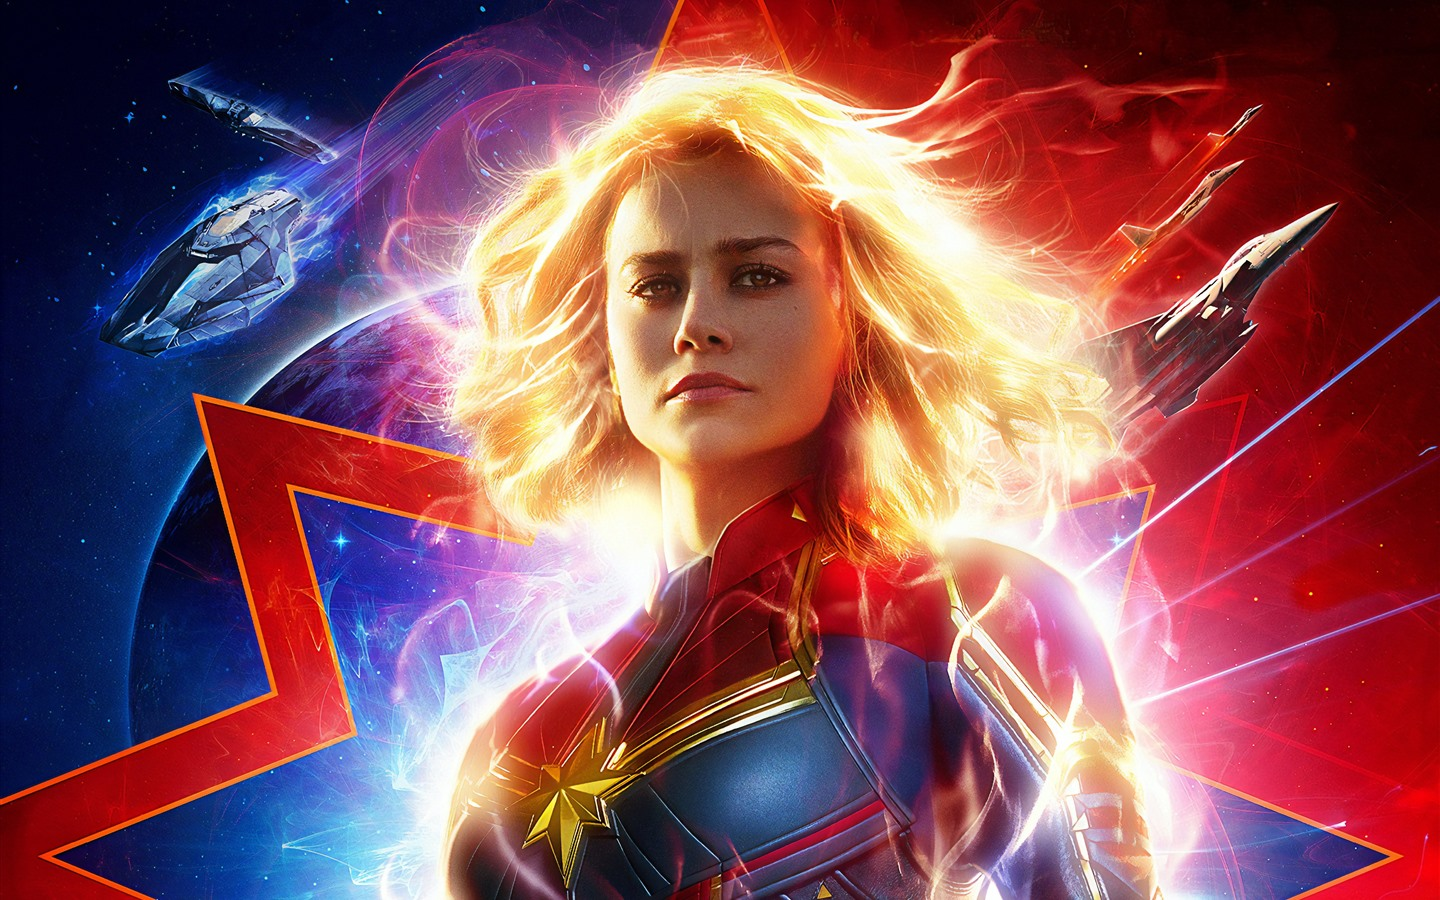 1125x2436 Wonder Woman 1984 Movie 2019 Iphone Xs Iphone 10: Wallpaper Captain Marvel 2019 5120x2880 UHD 5K Picture, Image